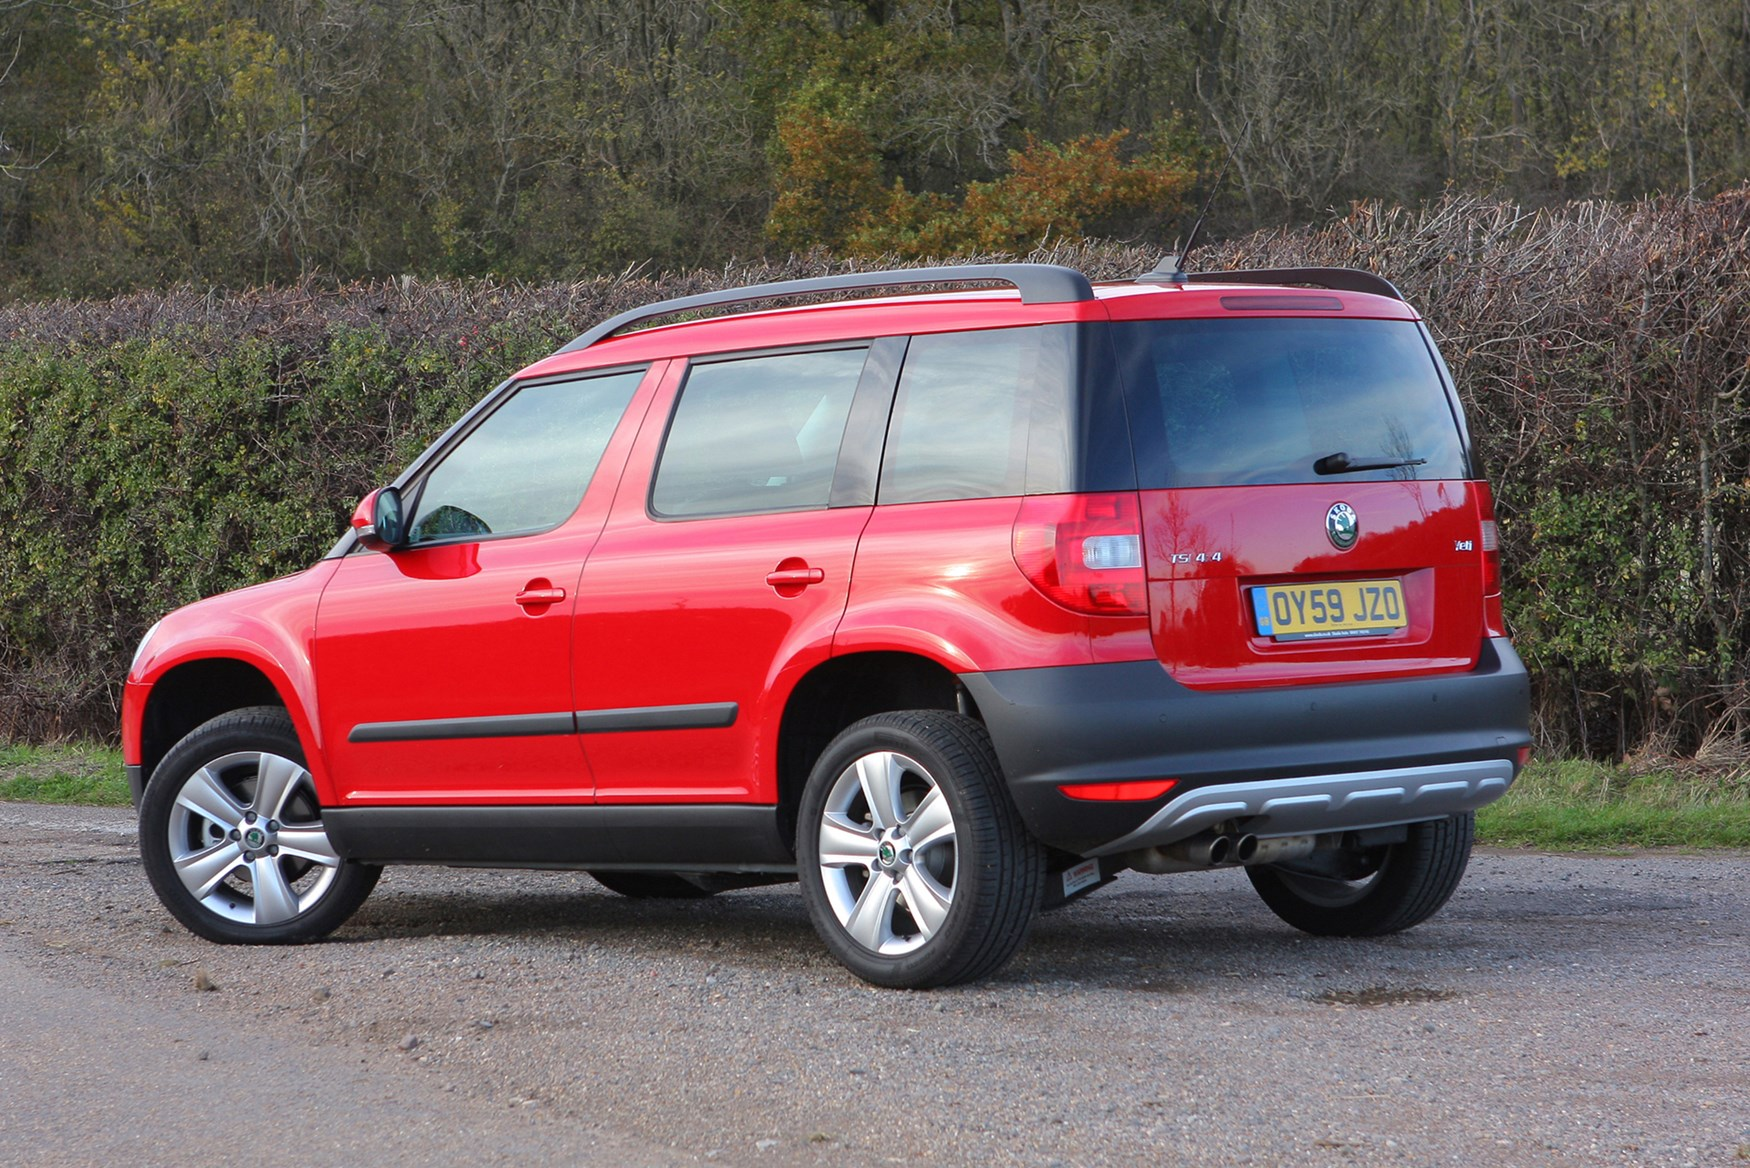 Skoda Yeti Hatchback Review (2009 - 2017) | Parkers